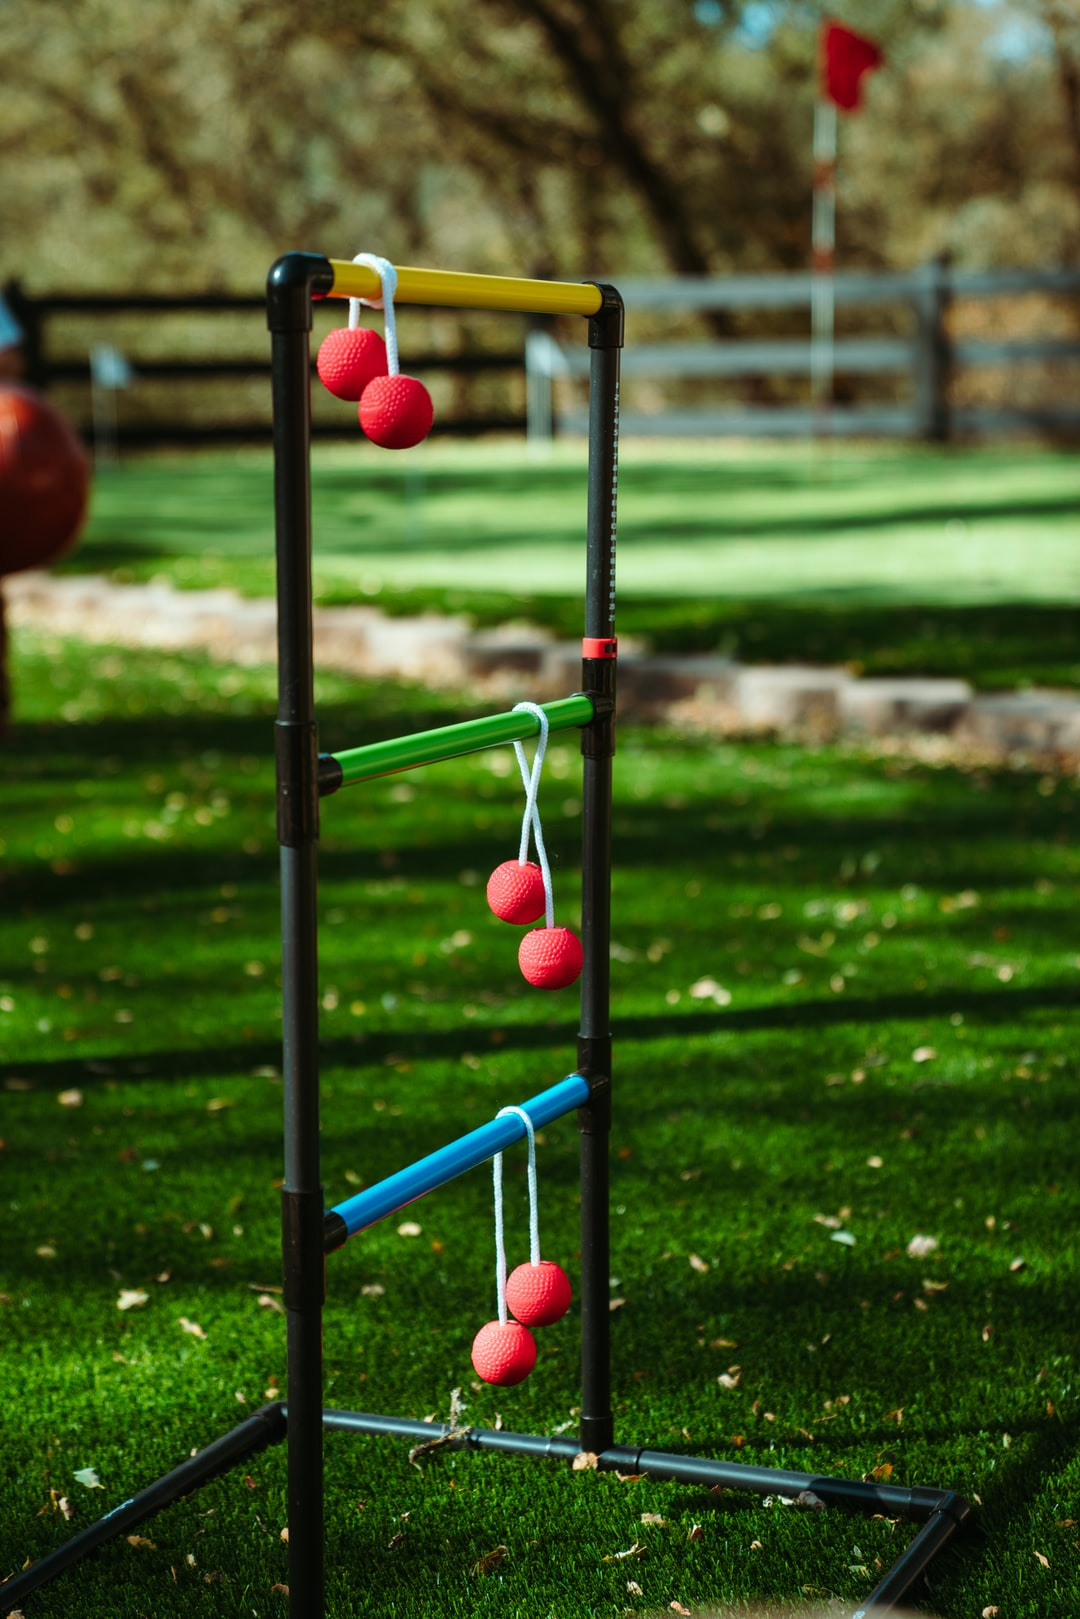 A game of ladder ball at a summer lawn party.